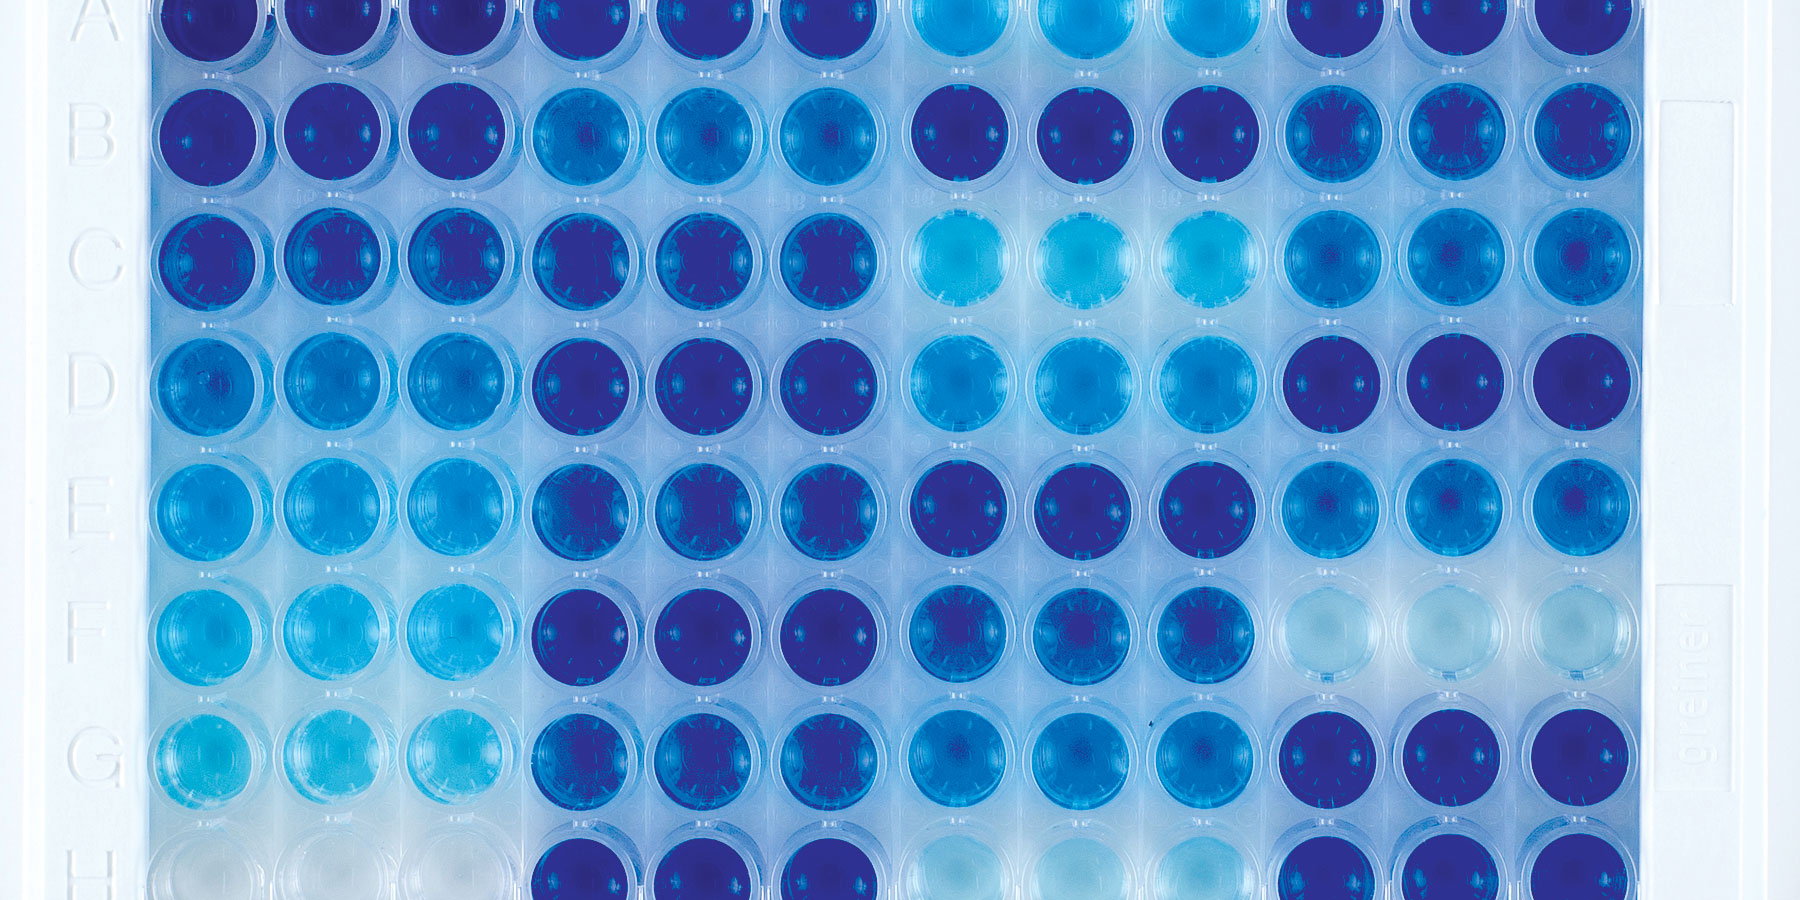 Improving ELISA Workflows with INTEGRA's Pipetting Solutions